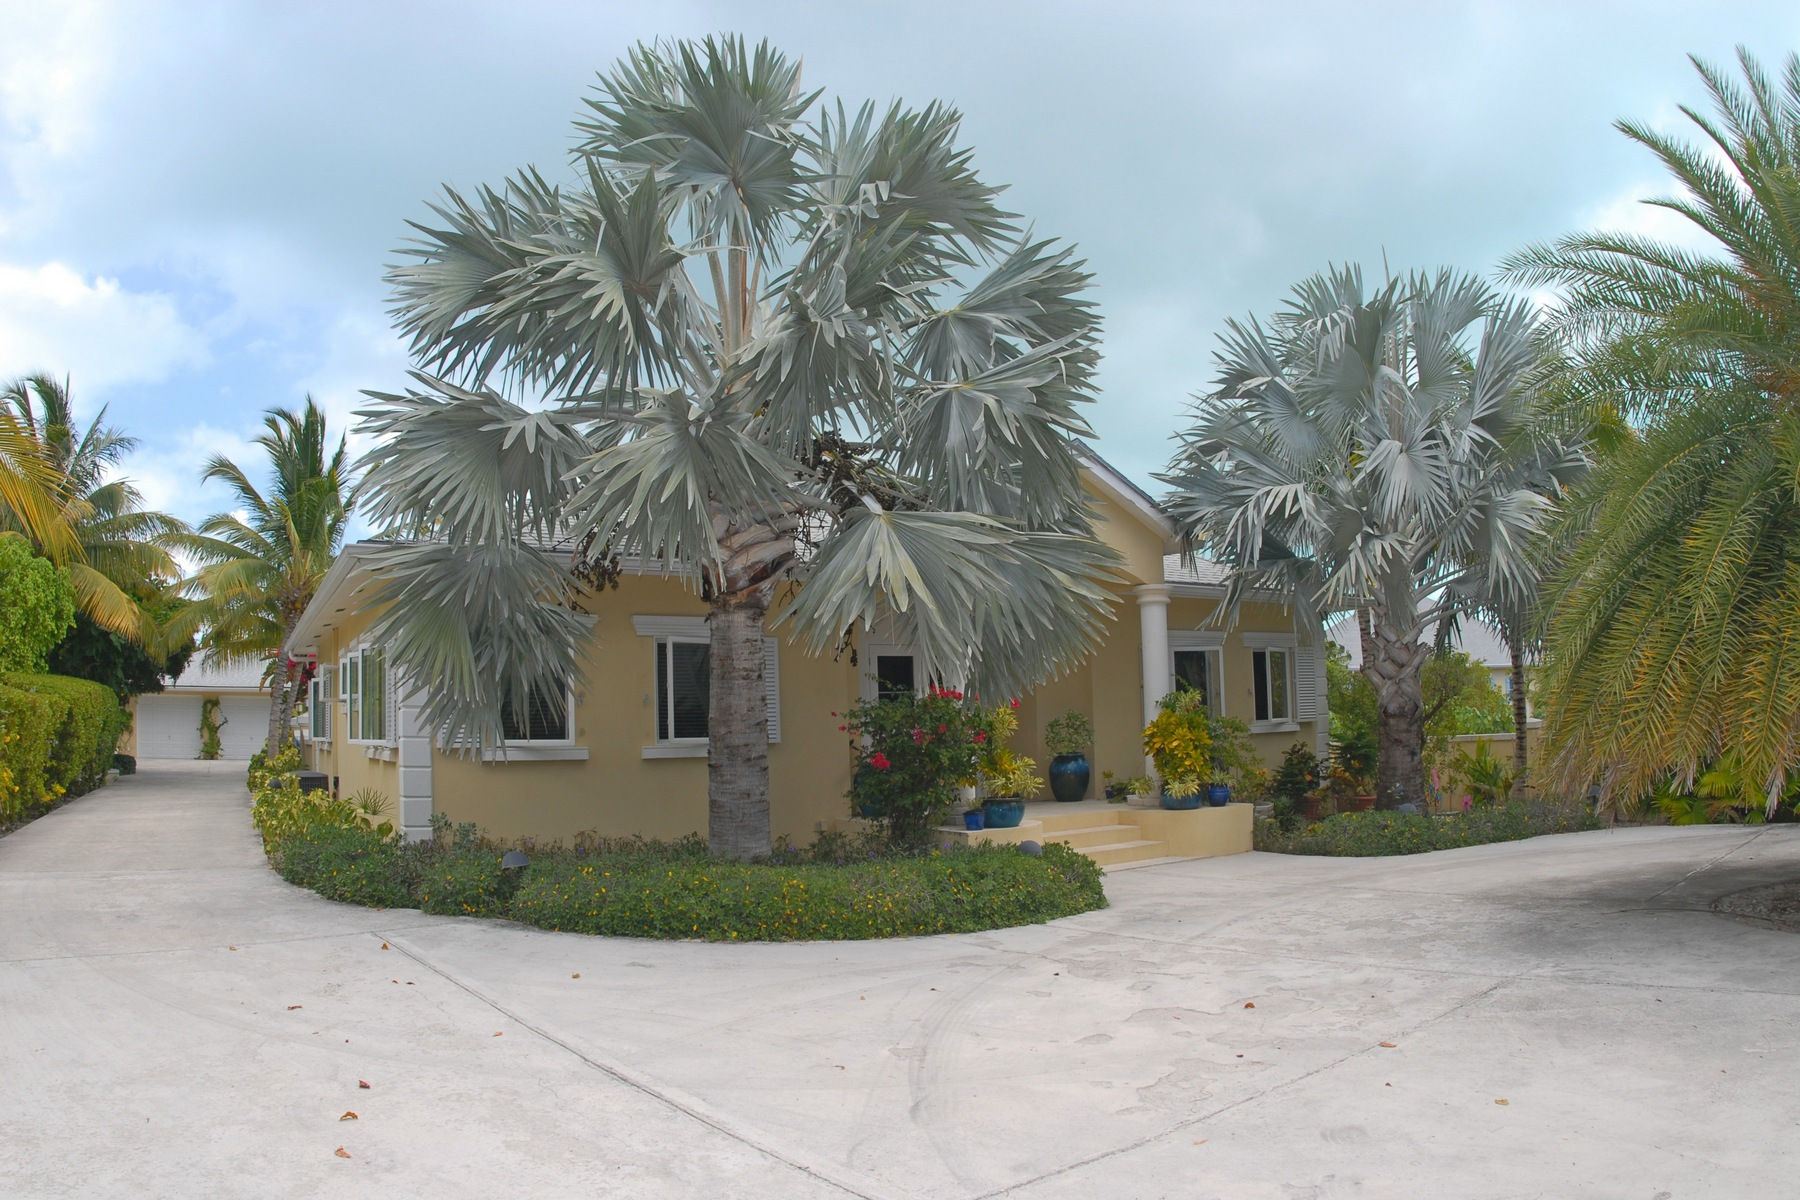 Single Family Home for Sale at 10 Seagull Alley Leeward, Providenciales Turks And Caicos Islands